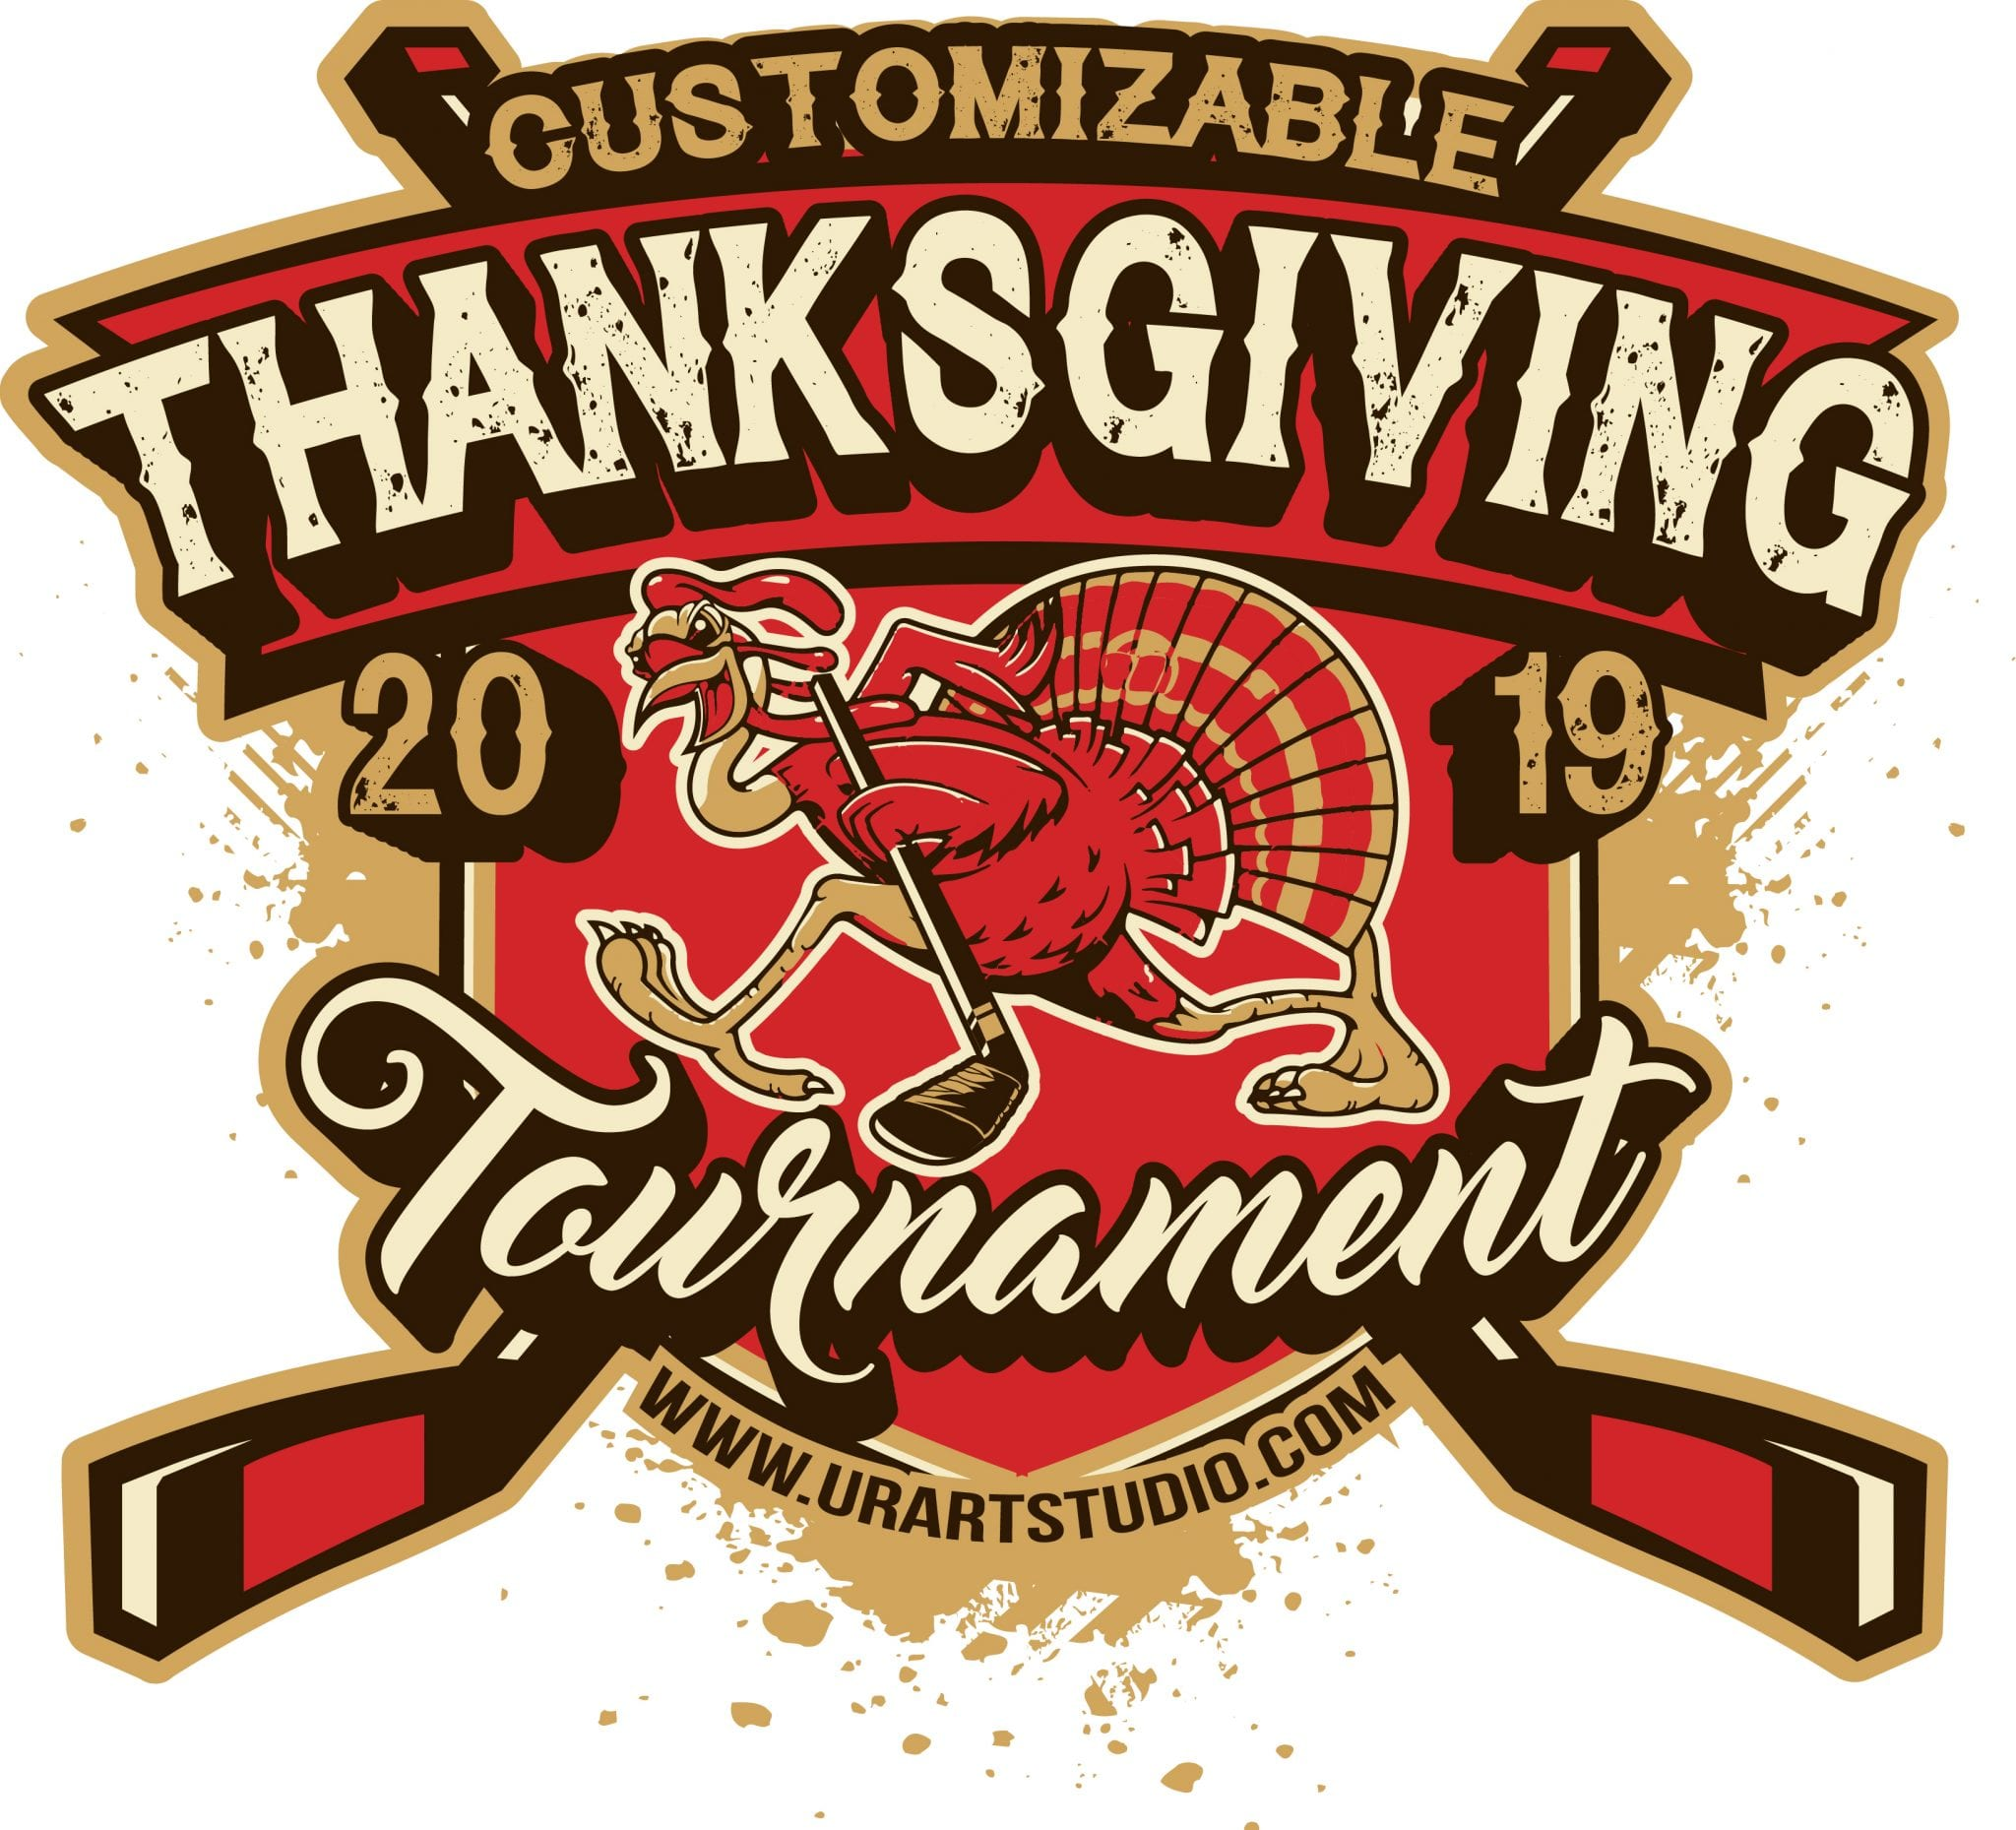 THANKSGIVING HOCKEY TOURNAMENT customizable T-shirt vector logo design for print 2019